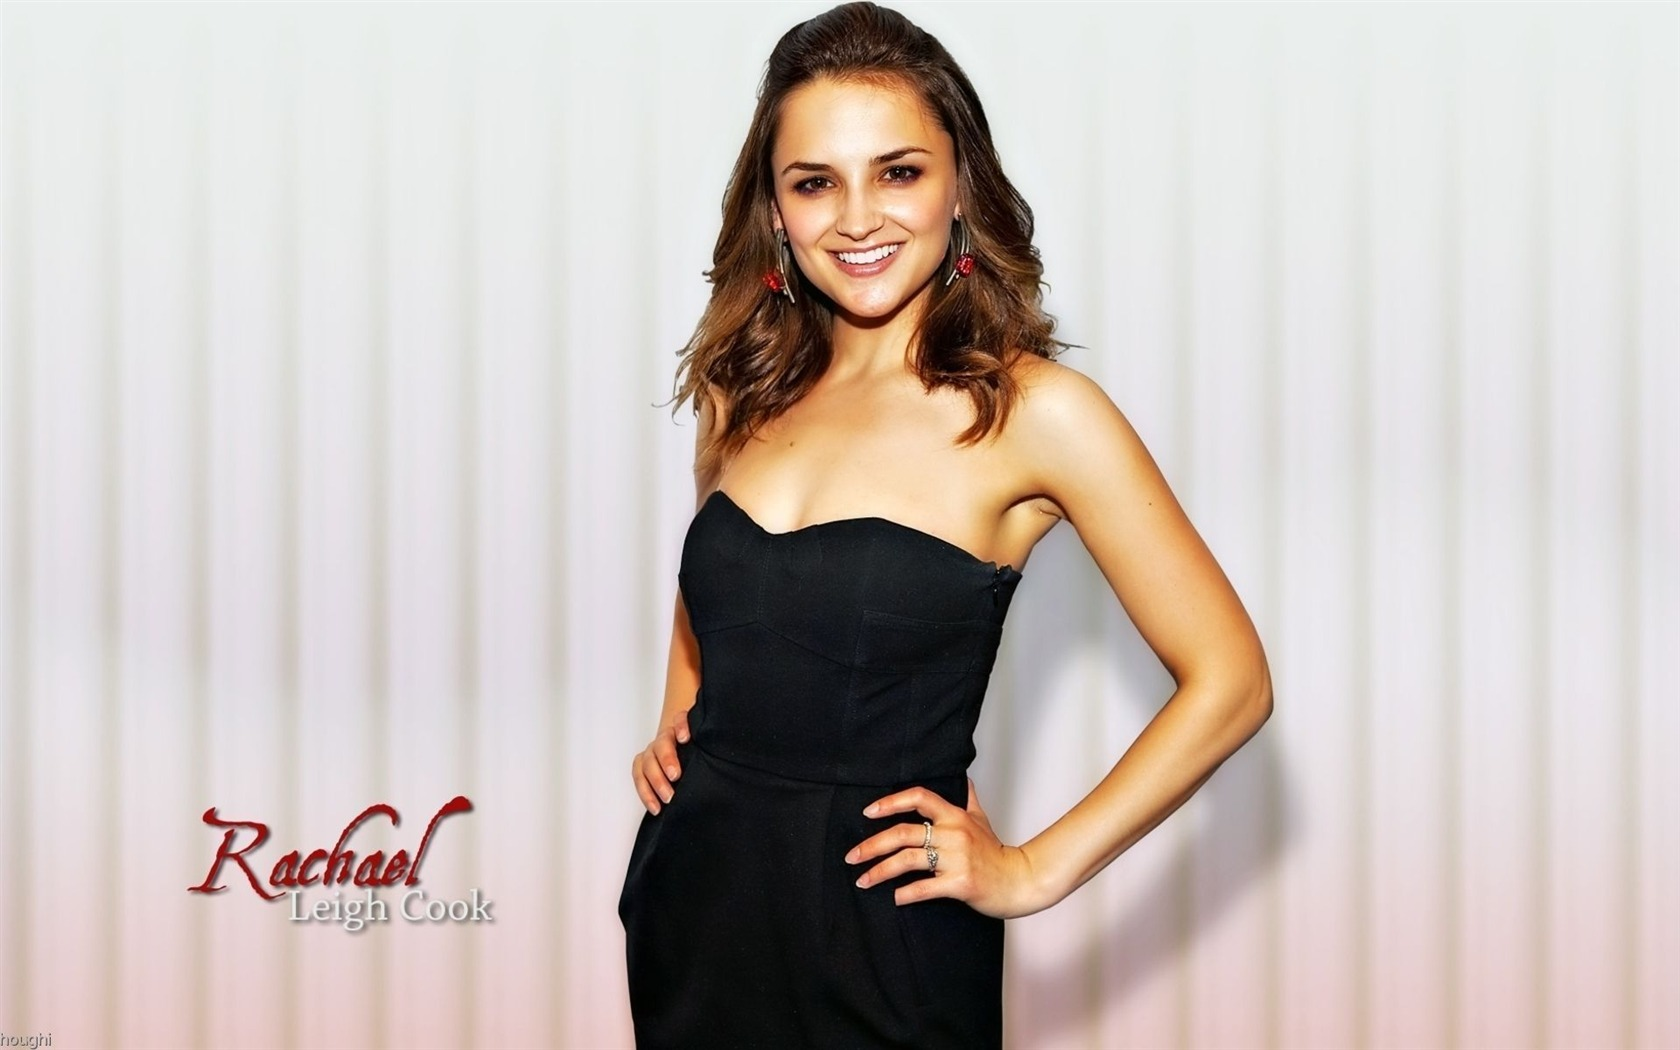 Rachael Leigh Cook #015 - 1680x1050 Wallpapers Pictures Photos Images